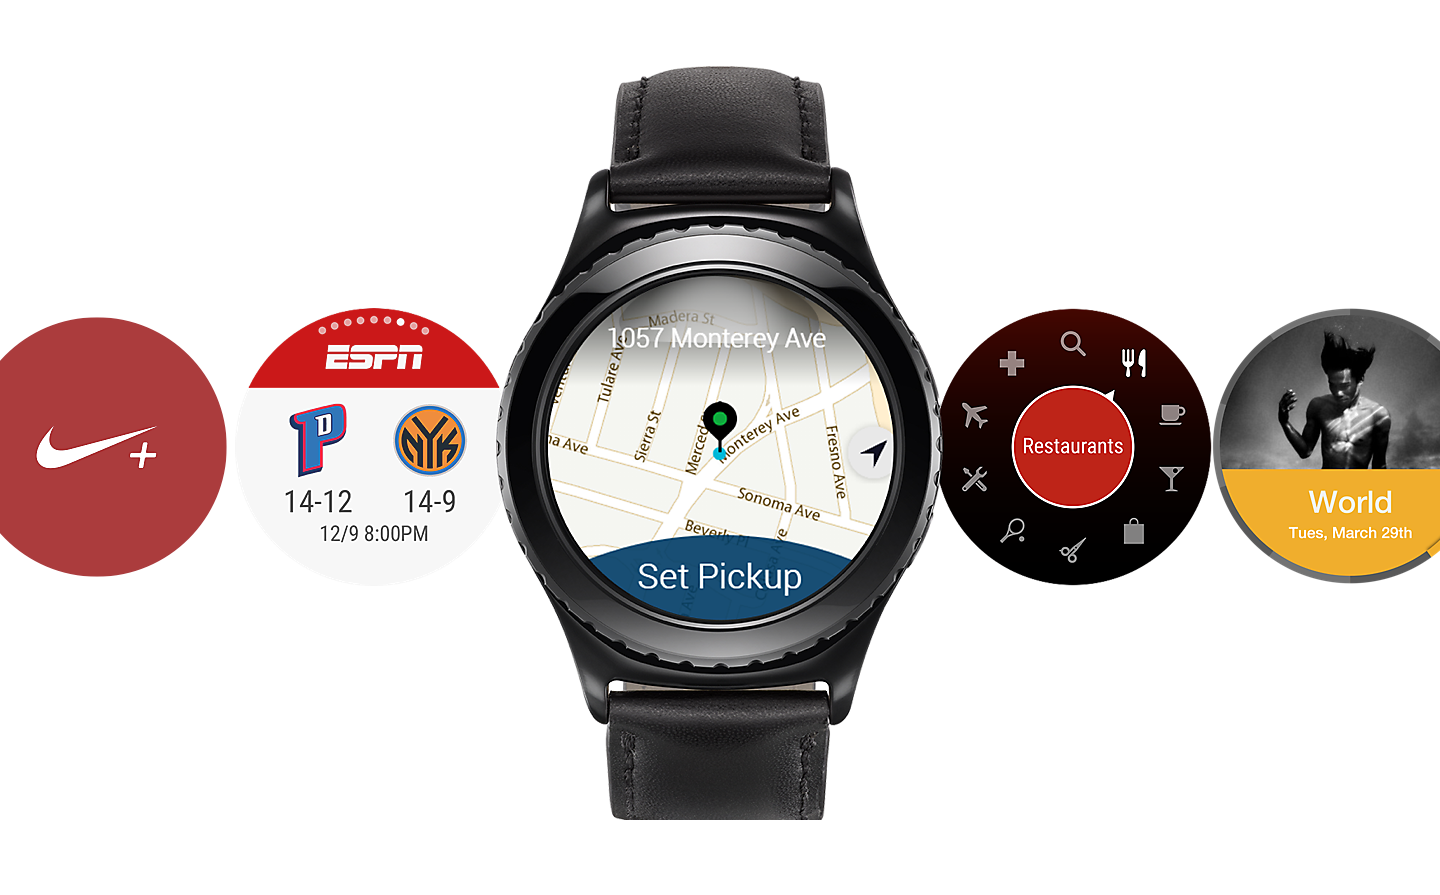 Samsung Gear S2 Apps - Galaxy S2 Smart watches with apps displayed